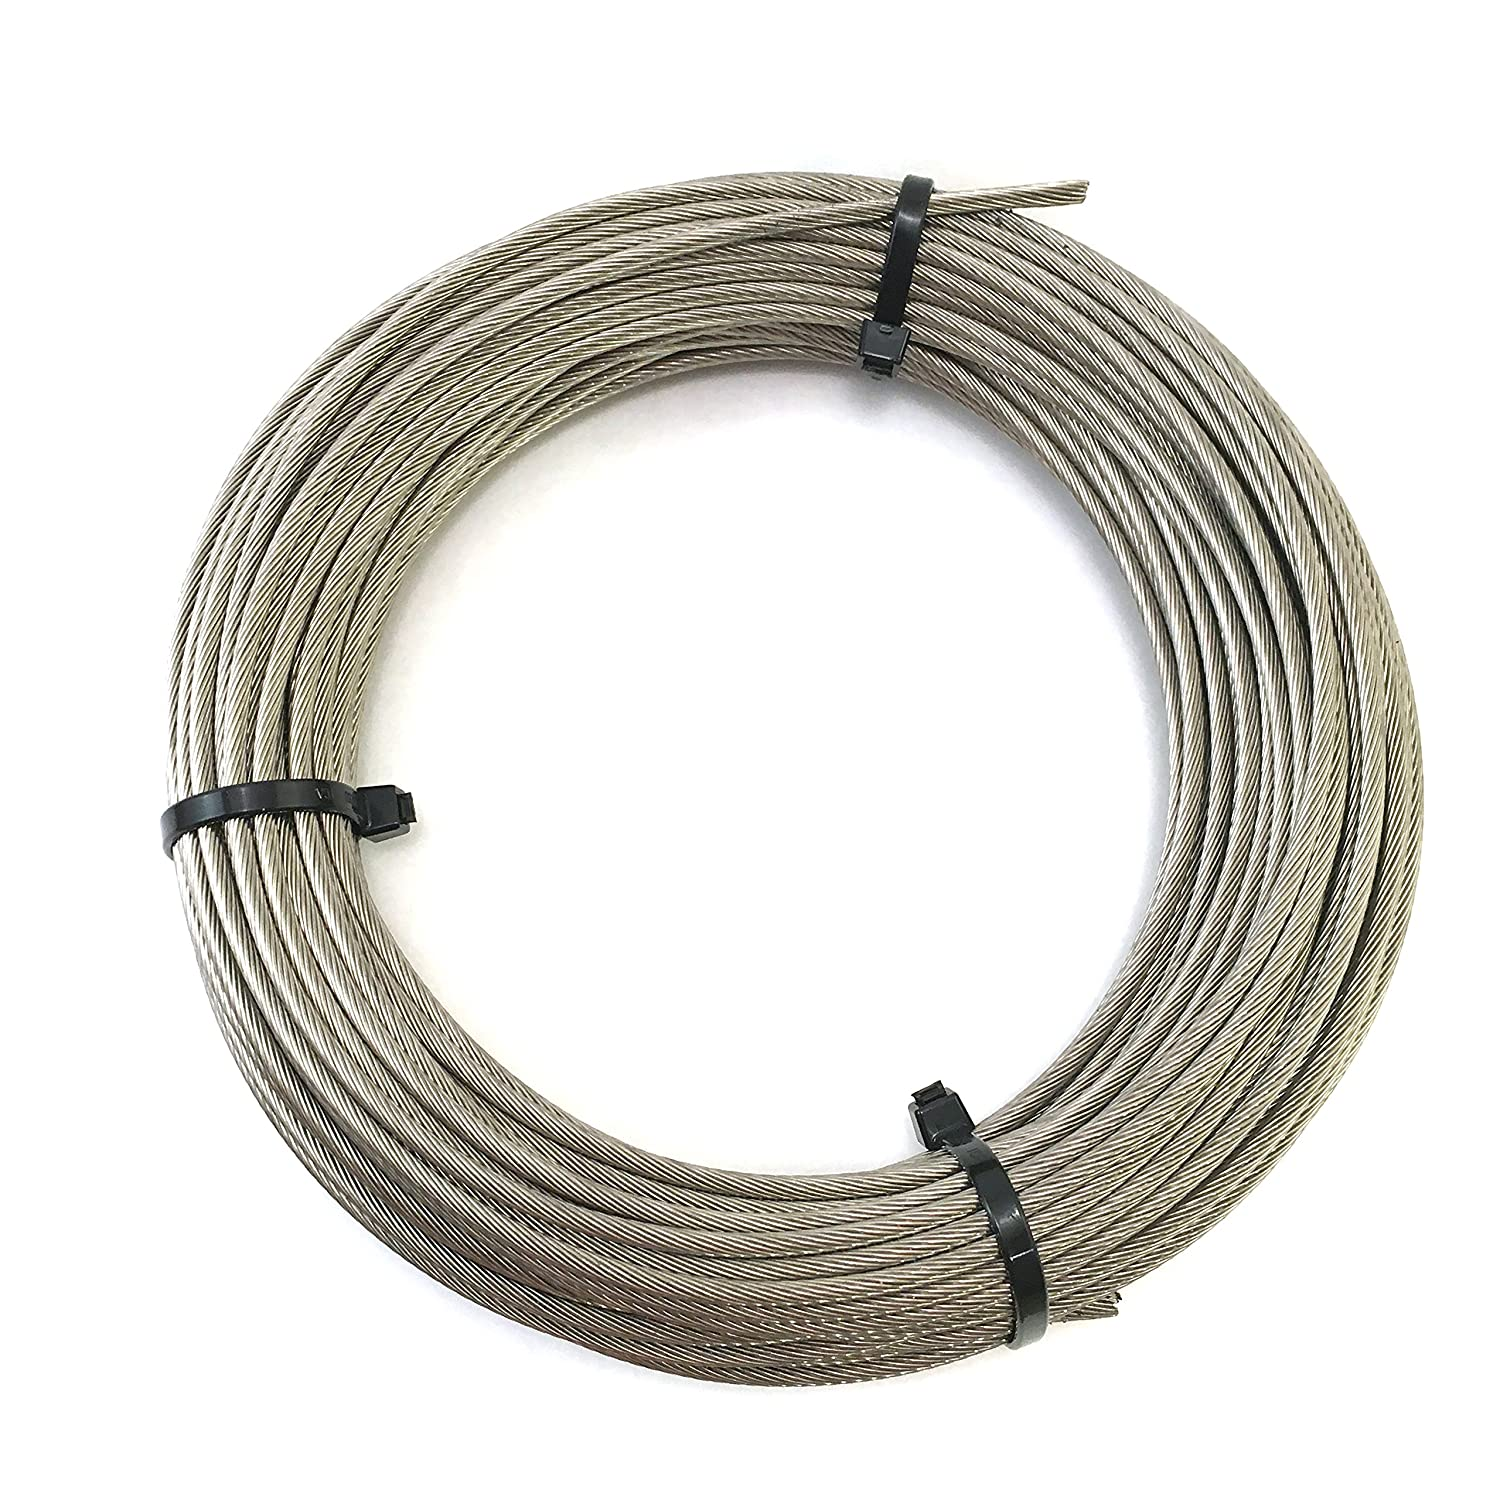 Stainless Steel Aircraft Cable 1 8 1x19 Marine Grade Type 316 Grade 100ft